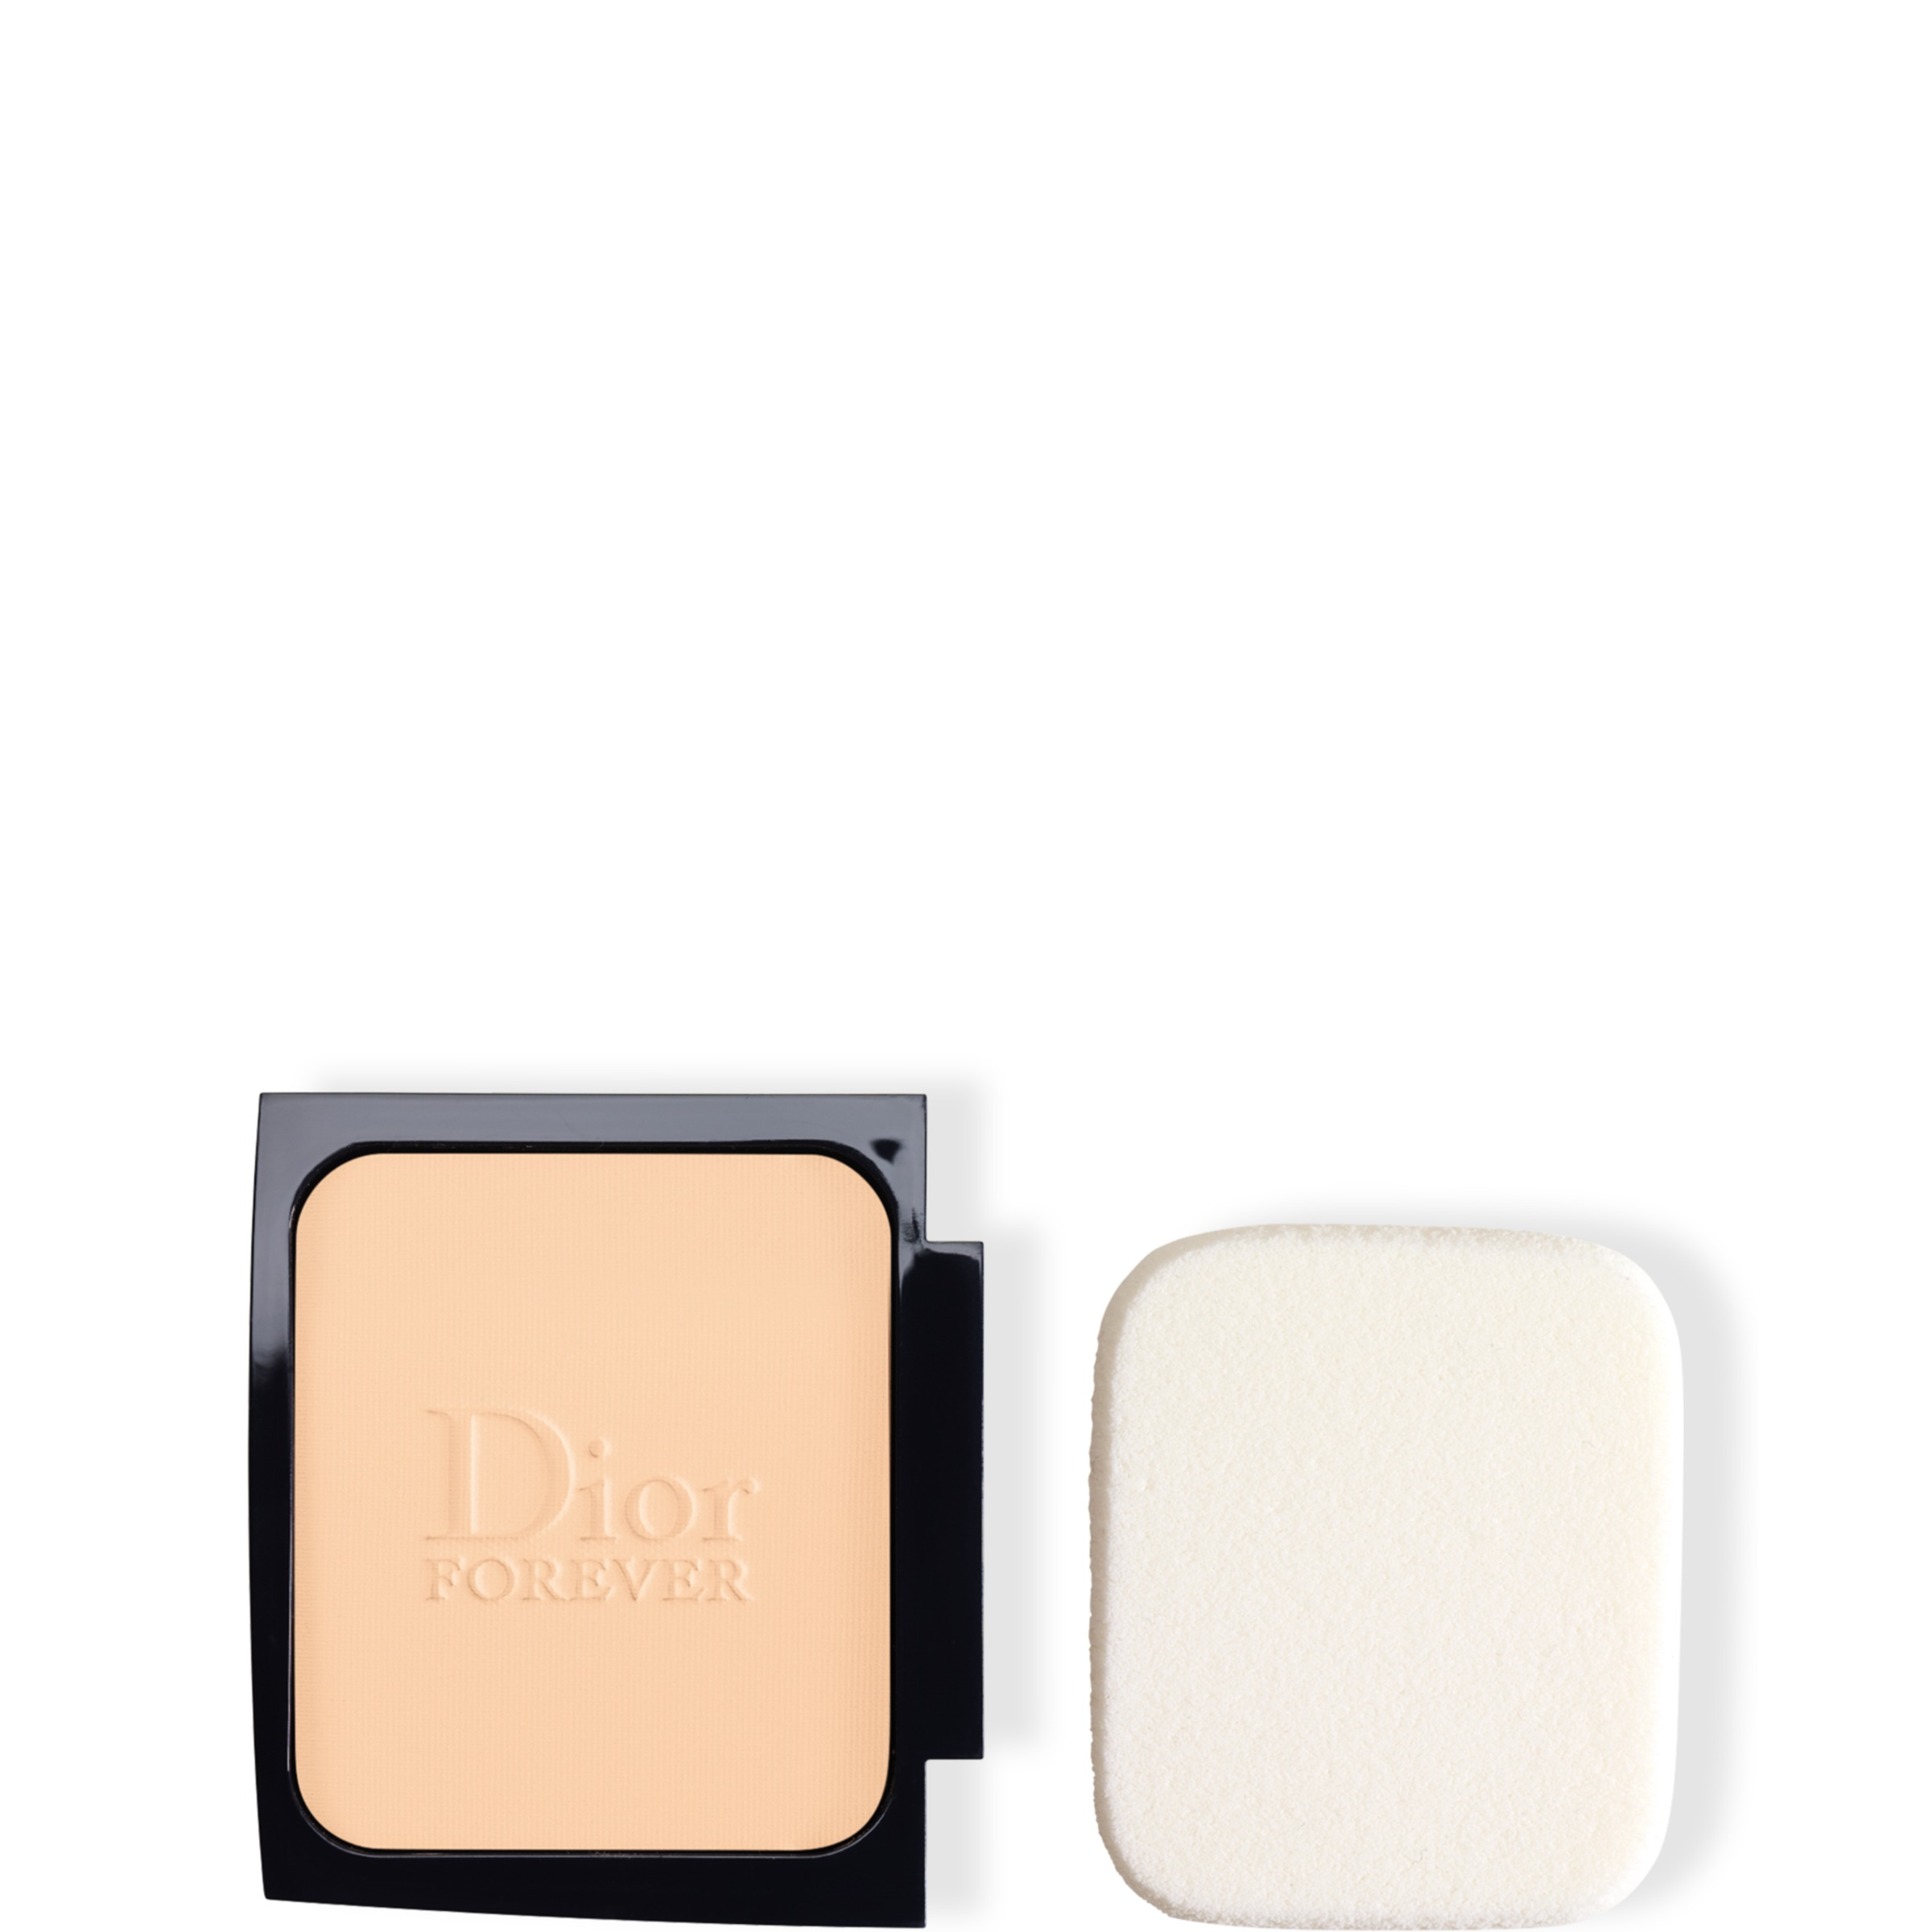 Diorskin Forever Foundation Compact Refill